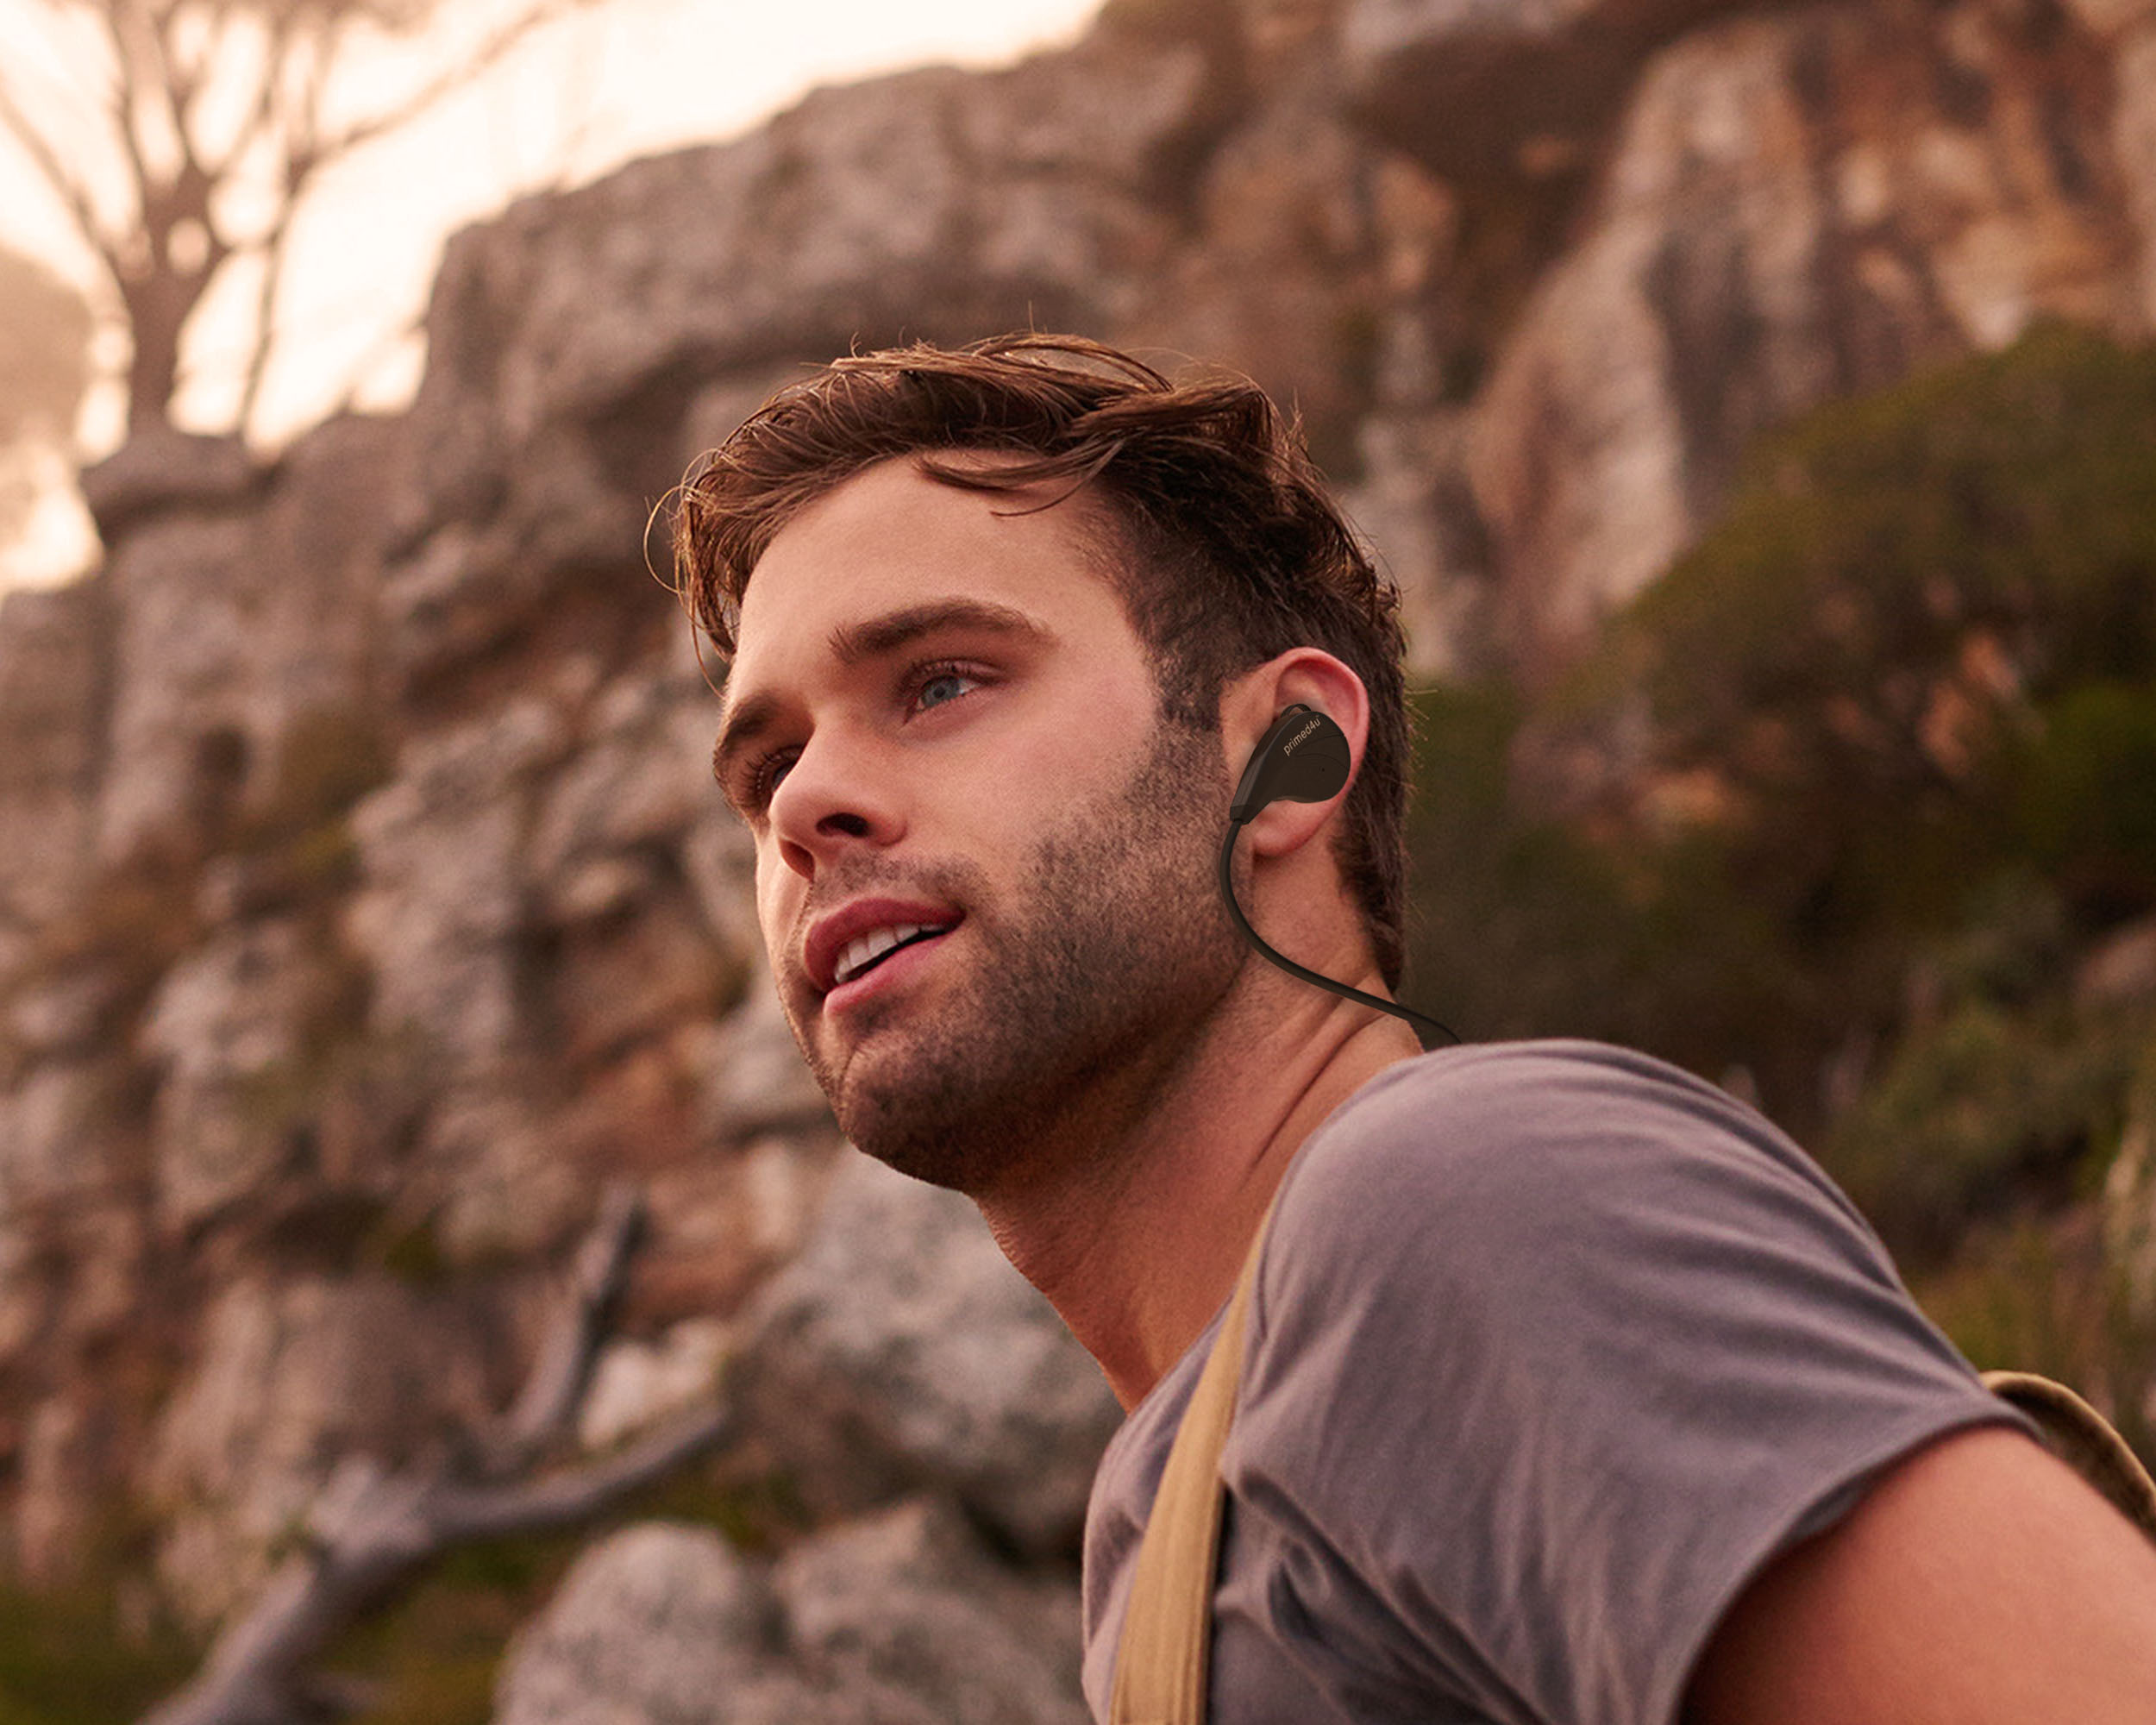 Young man hiking while wearing Primed4U headphone product